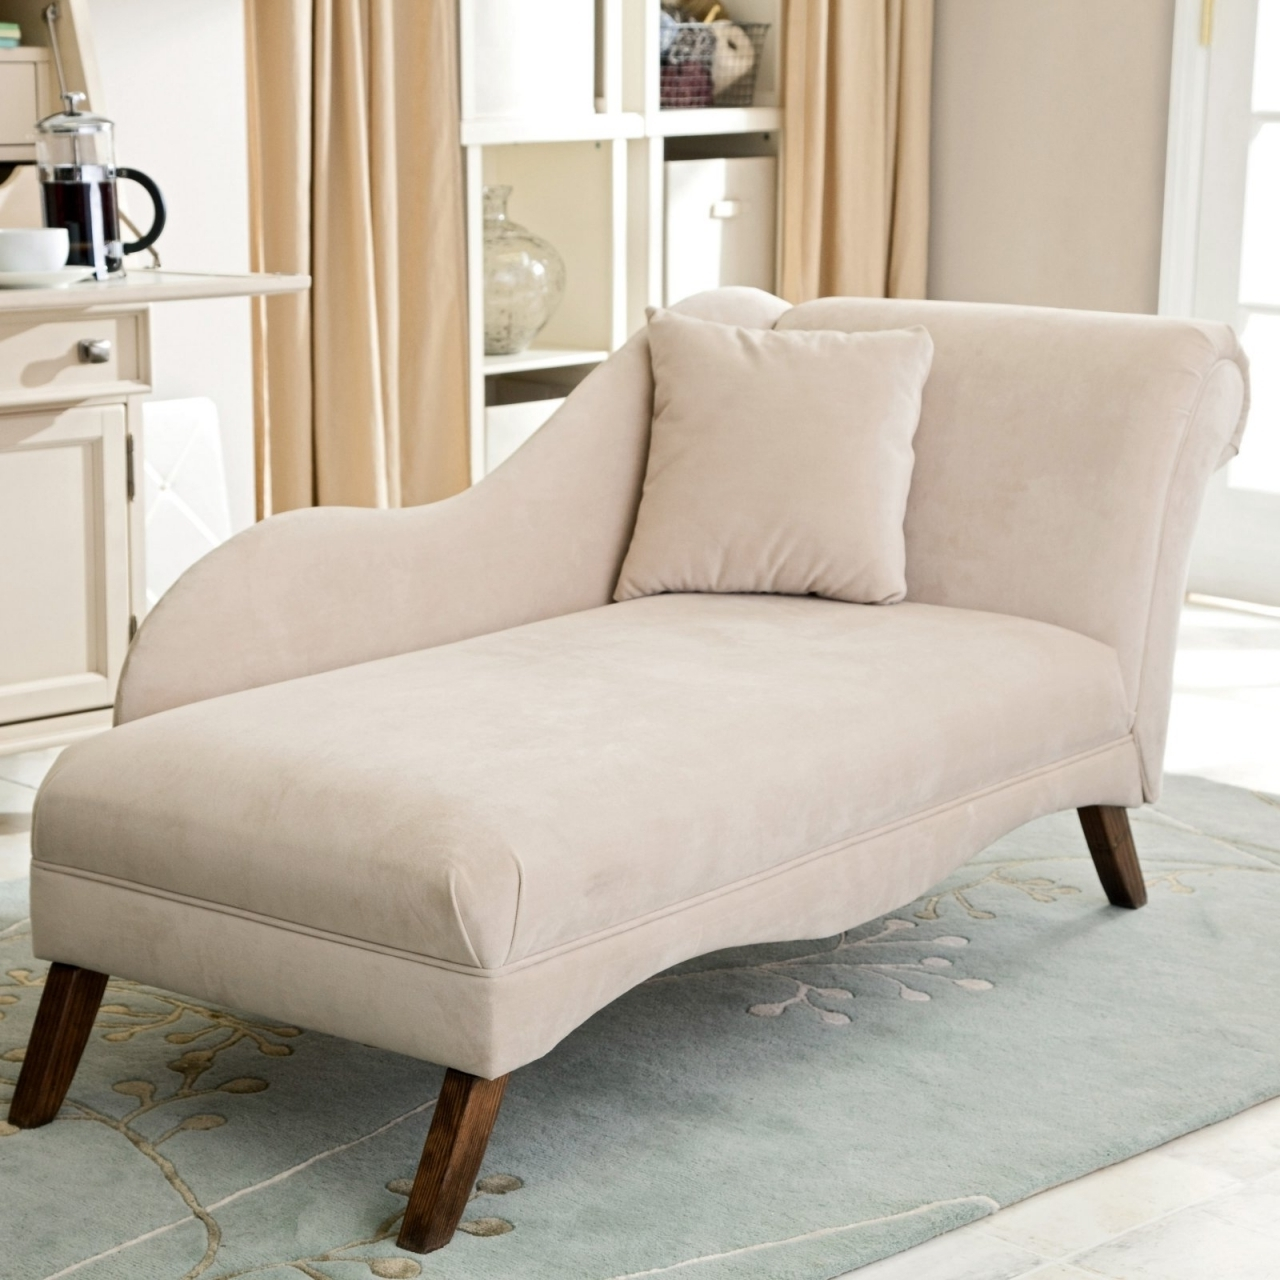 Favorite Contemporary Chaise Lounge Chairs With Regard To Charm Contemporary Chaise Lounge Chairs Living Room Interior (View 8 of 15)